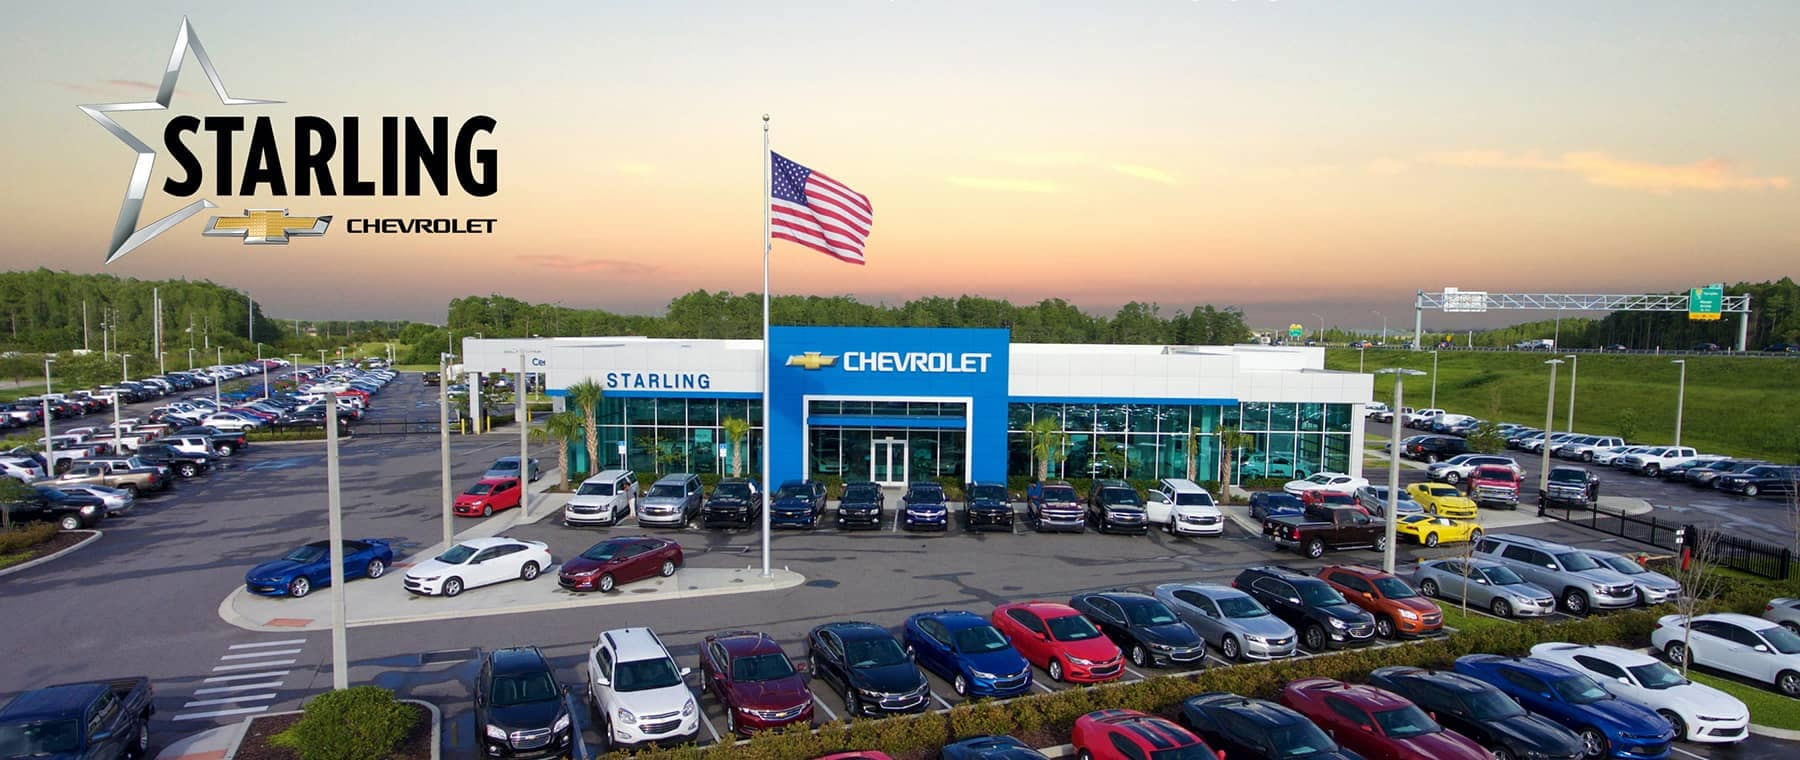 Welcome To Starling Chevrolet In Orlando Fl